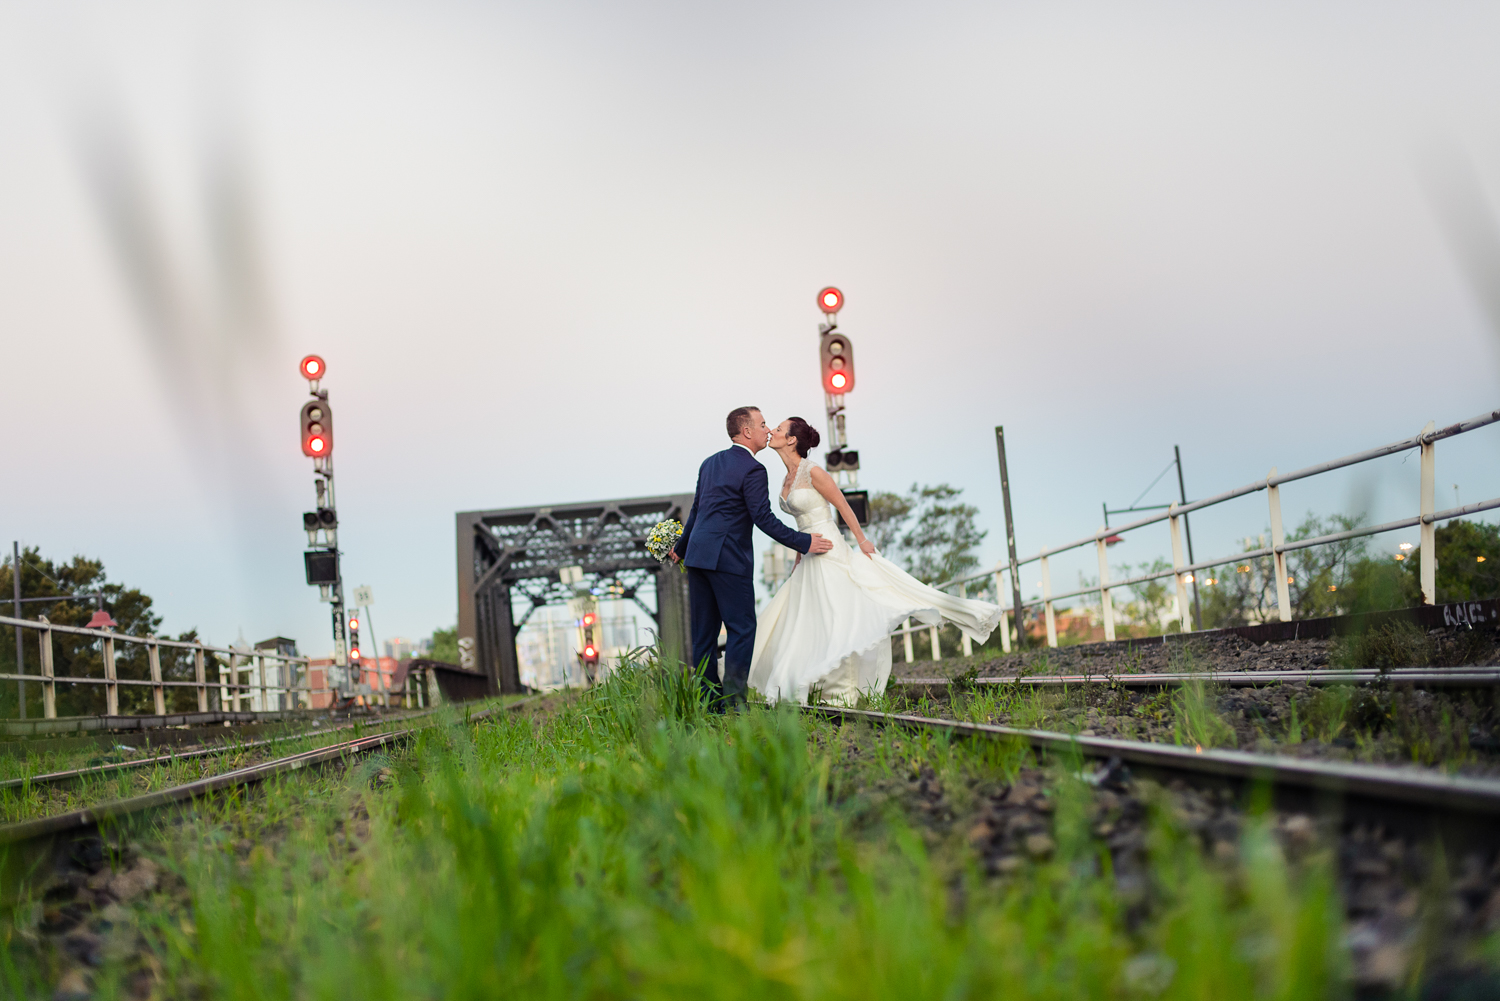 Melbourne-wedding-at-the-sub-station-an-old-power-station-Rhapsody-Road-Photography-Emma-Lambe-10.jpg